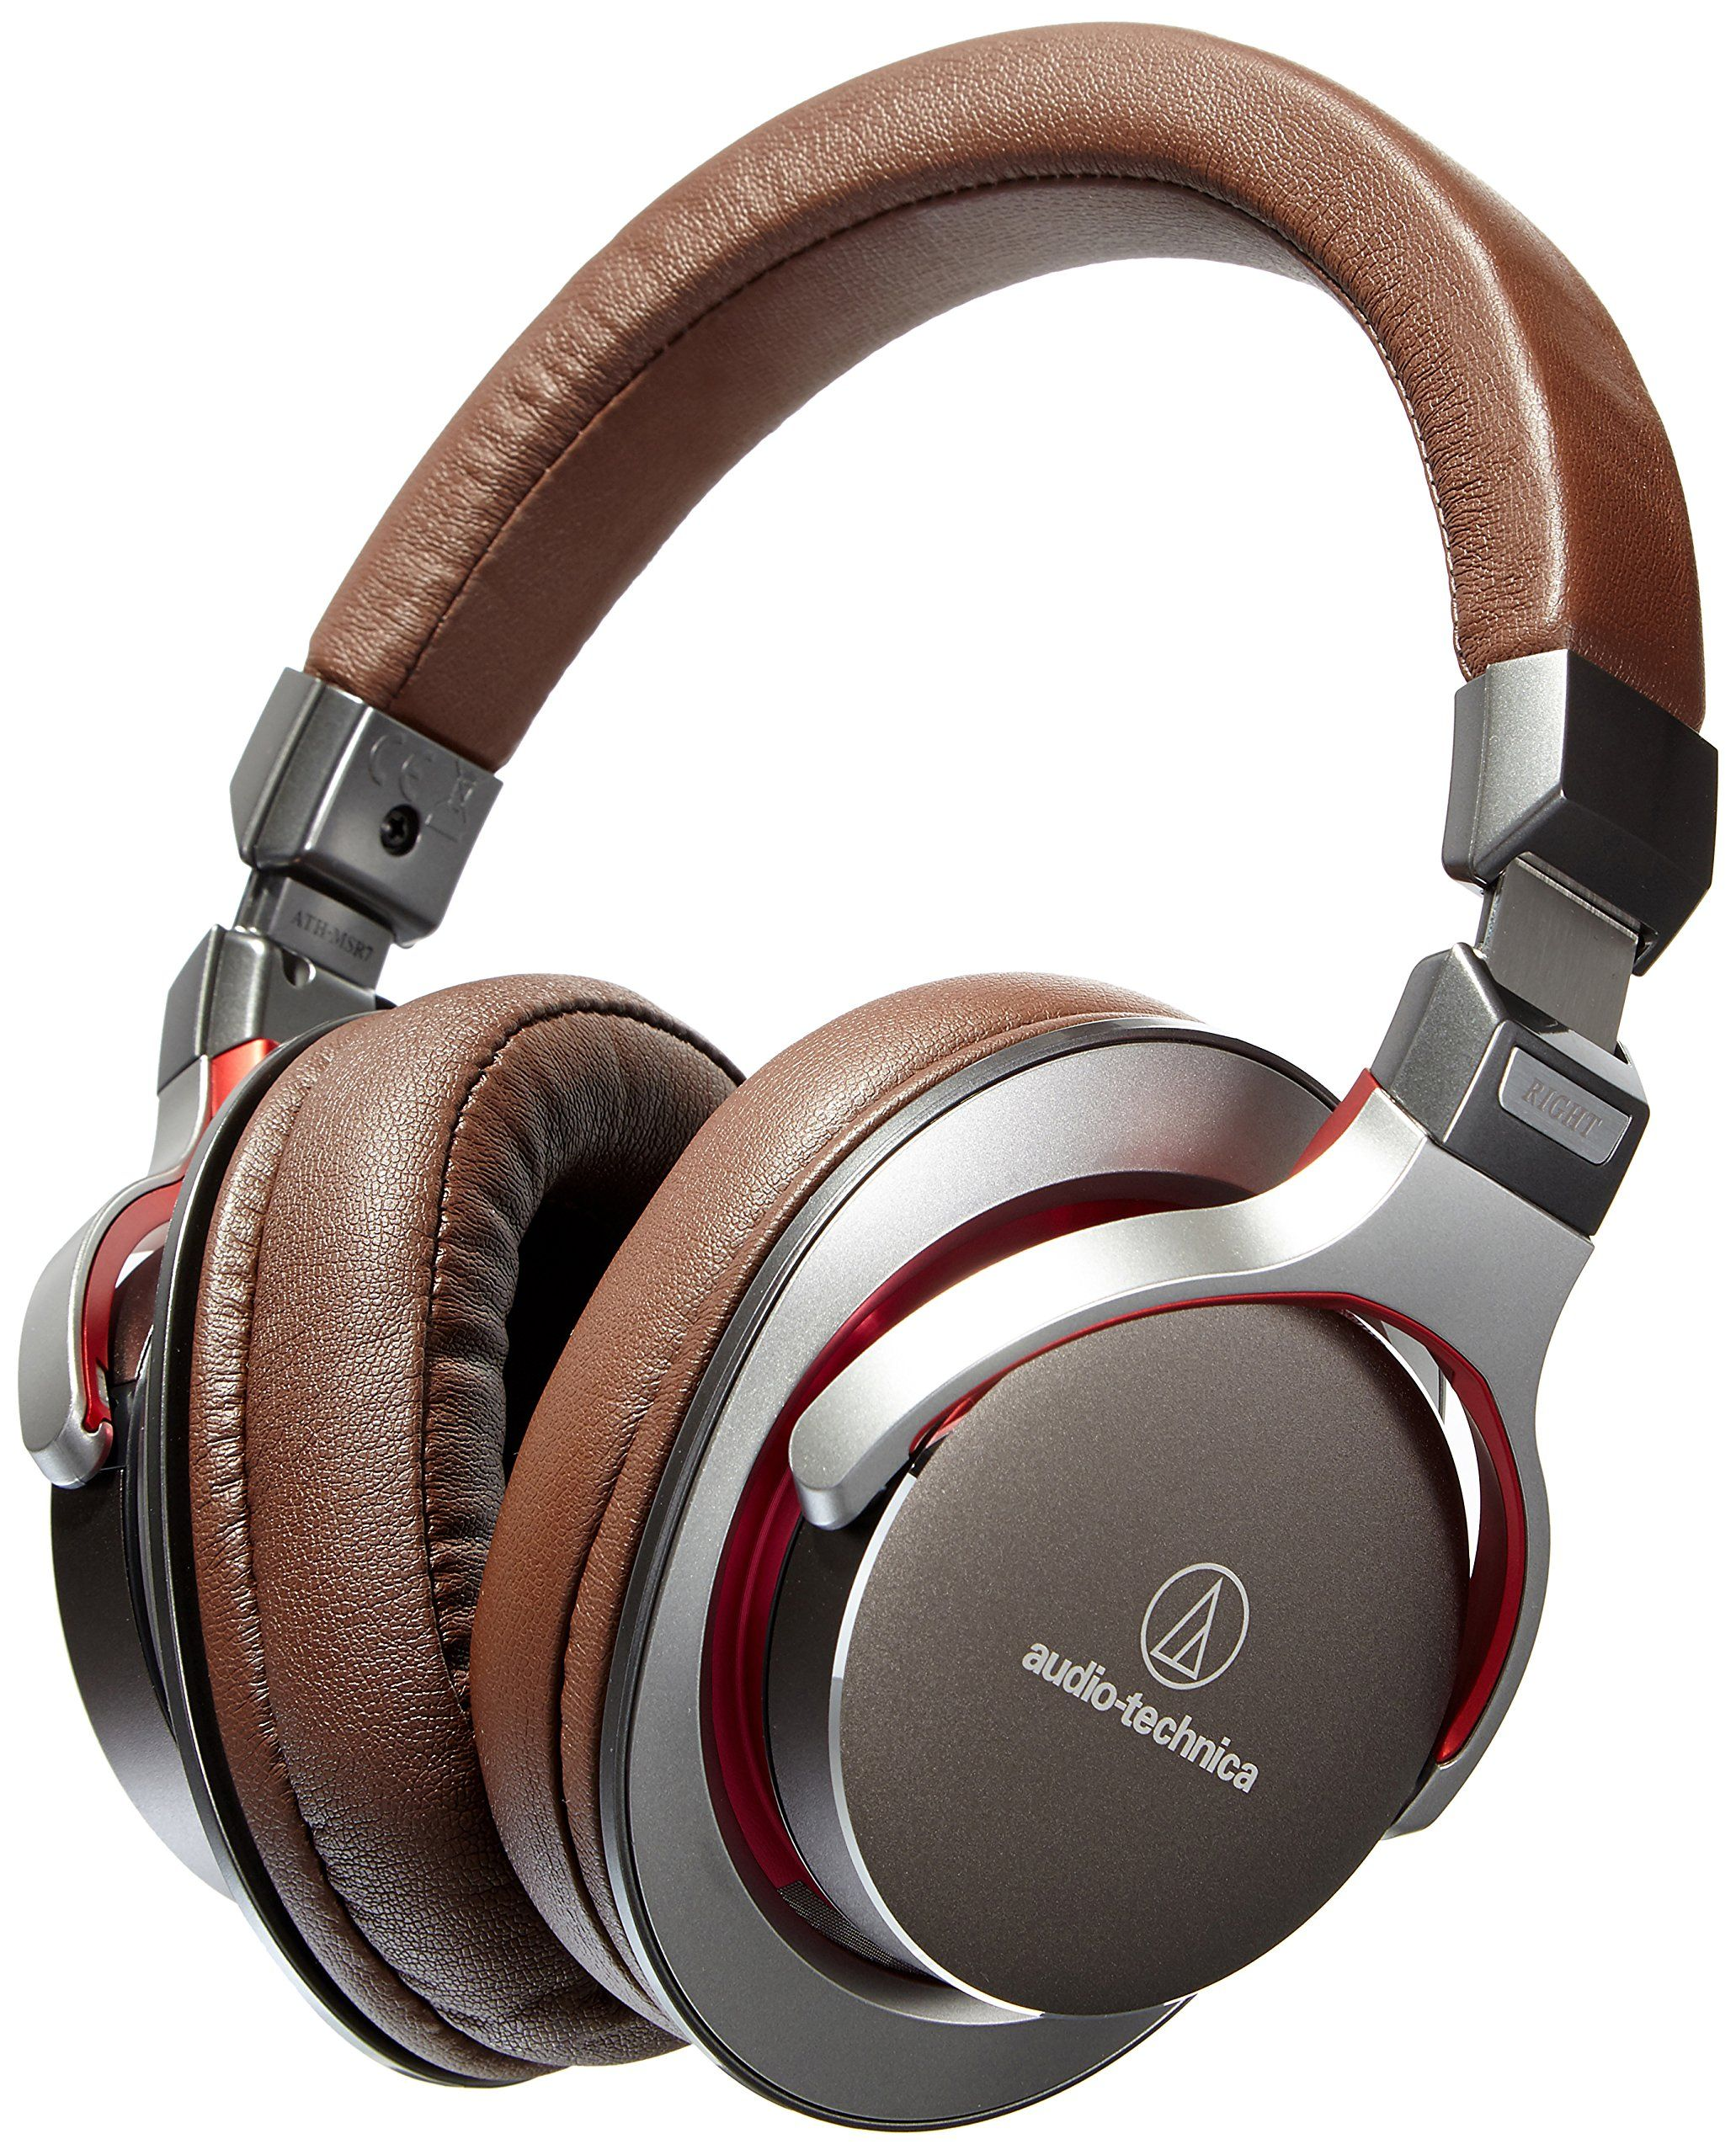 Audio-Technica ATH-MSR7GM SonicPro Over-Ear High-Resolution Audio Headphones…